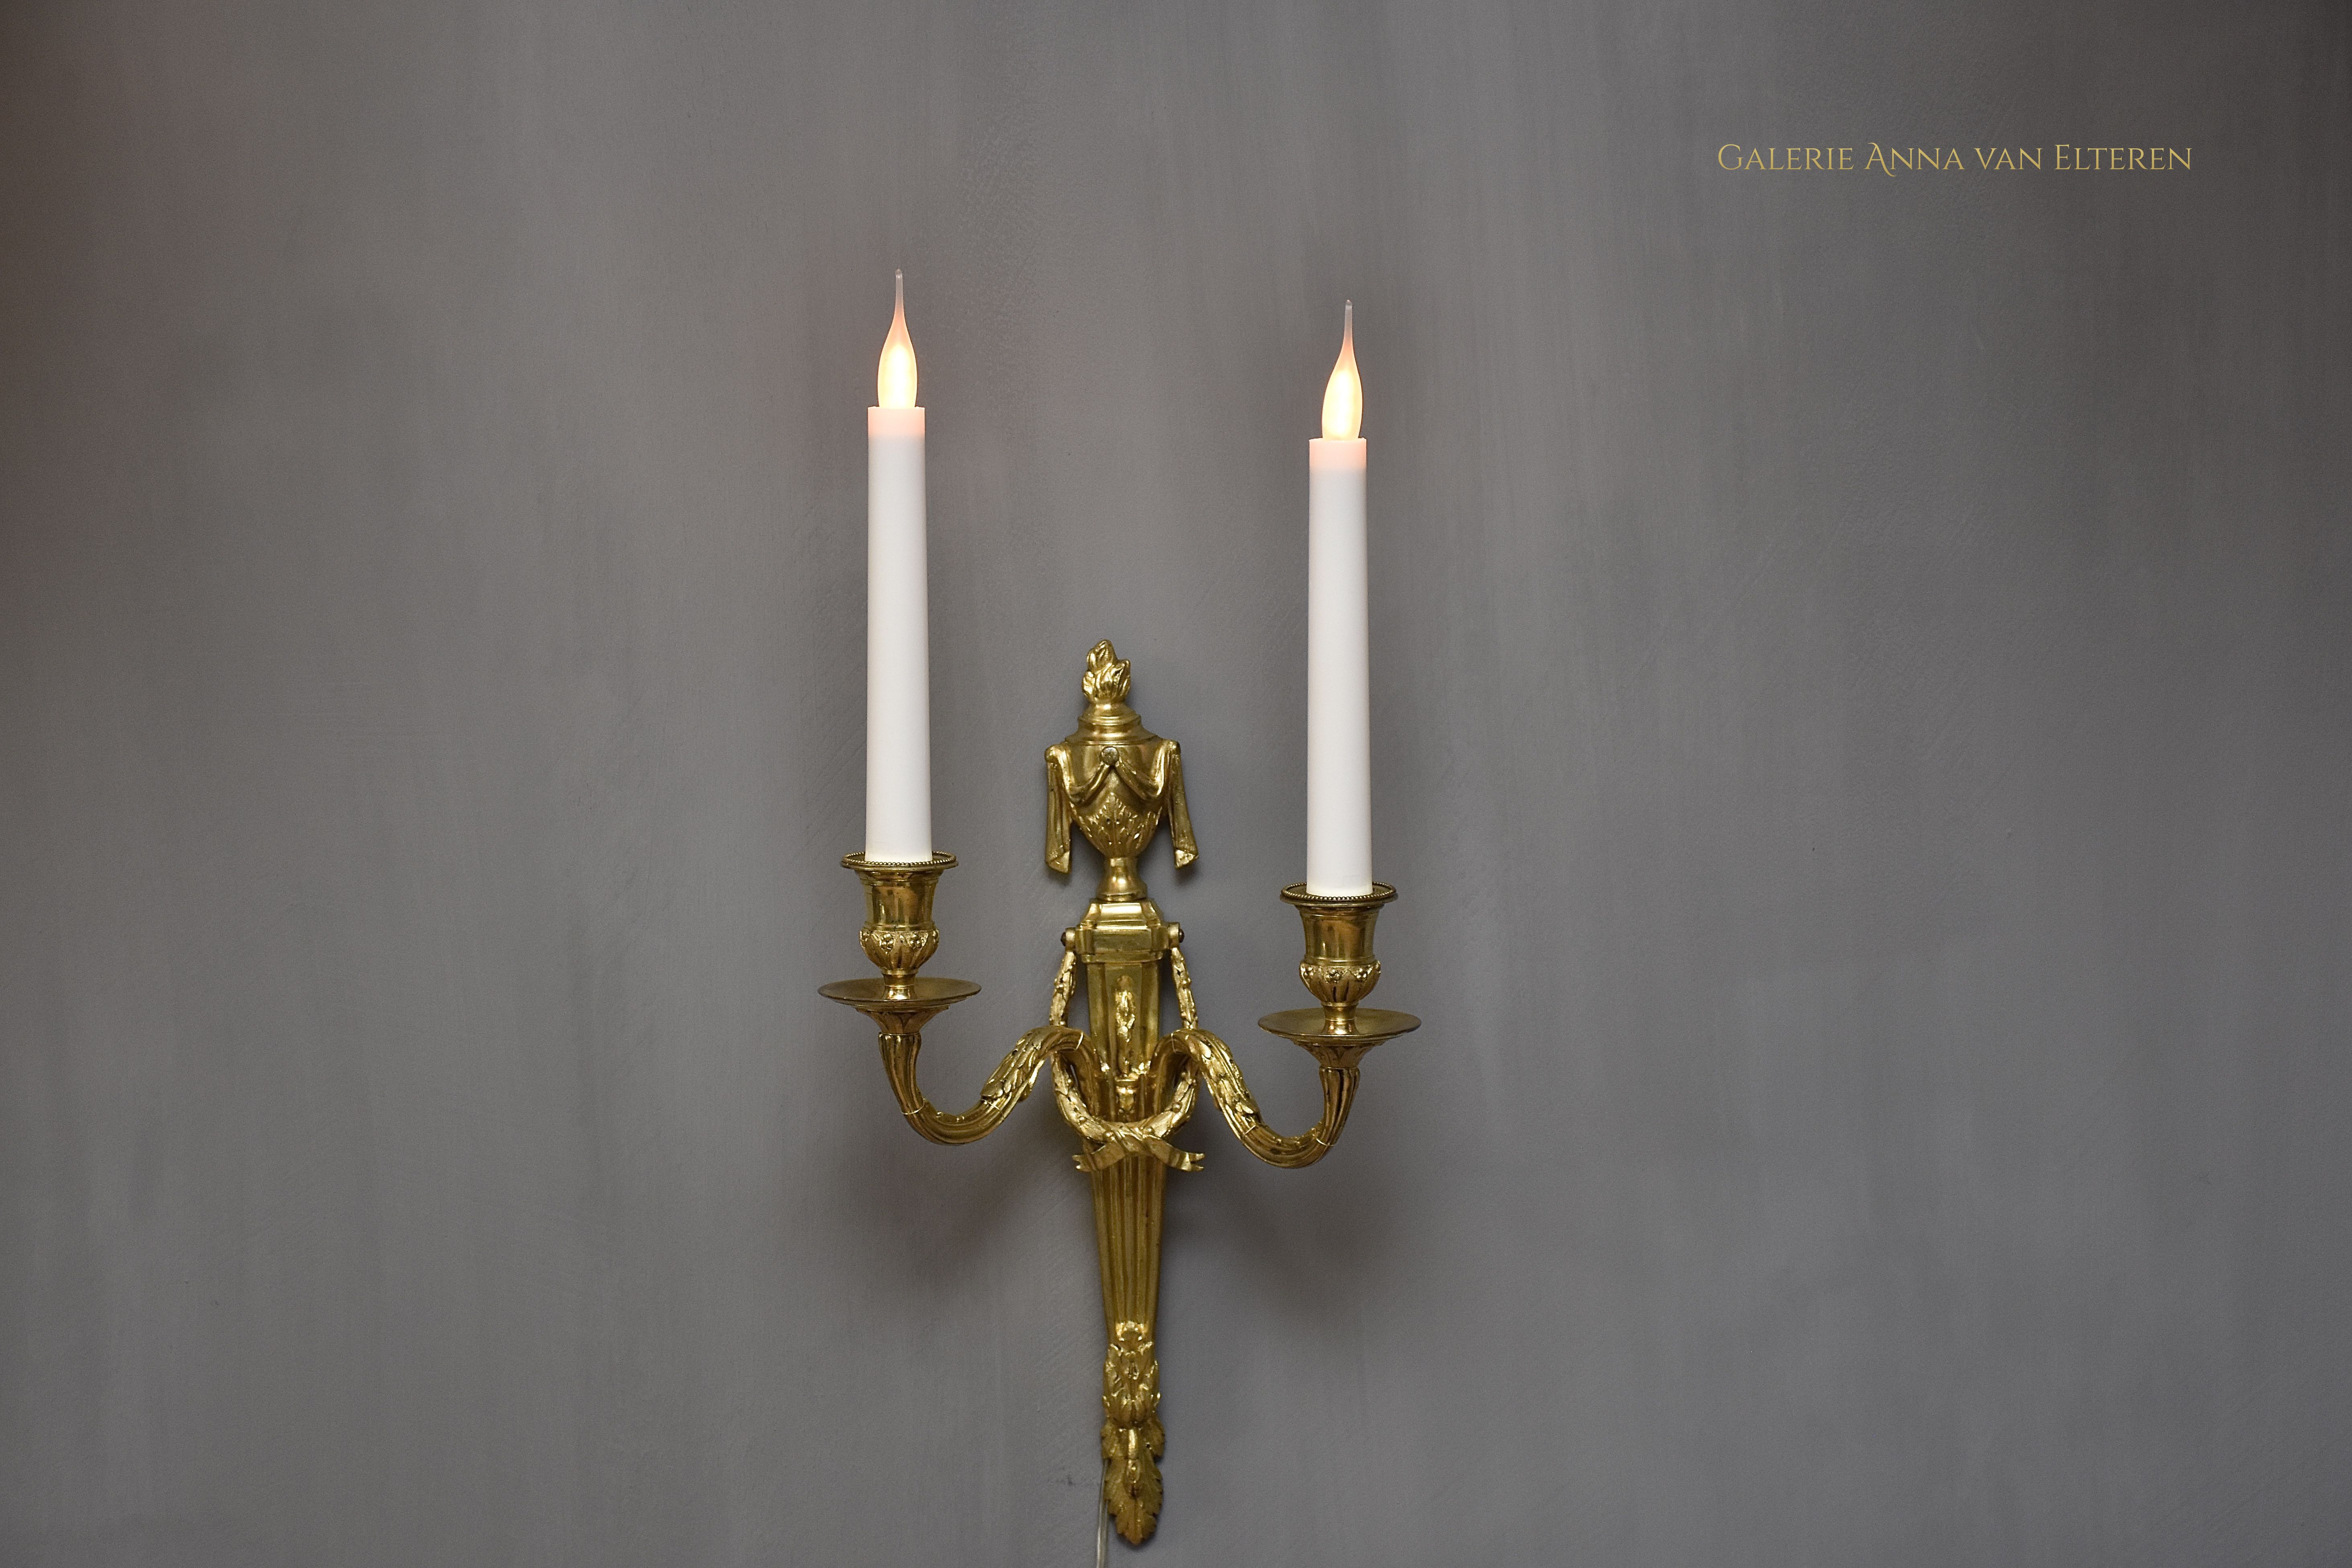 A pair of 19th c. gilt bronze wall appliques in the style of Louis XVI